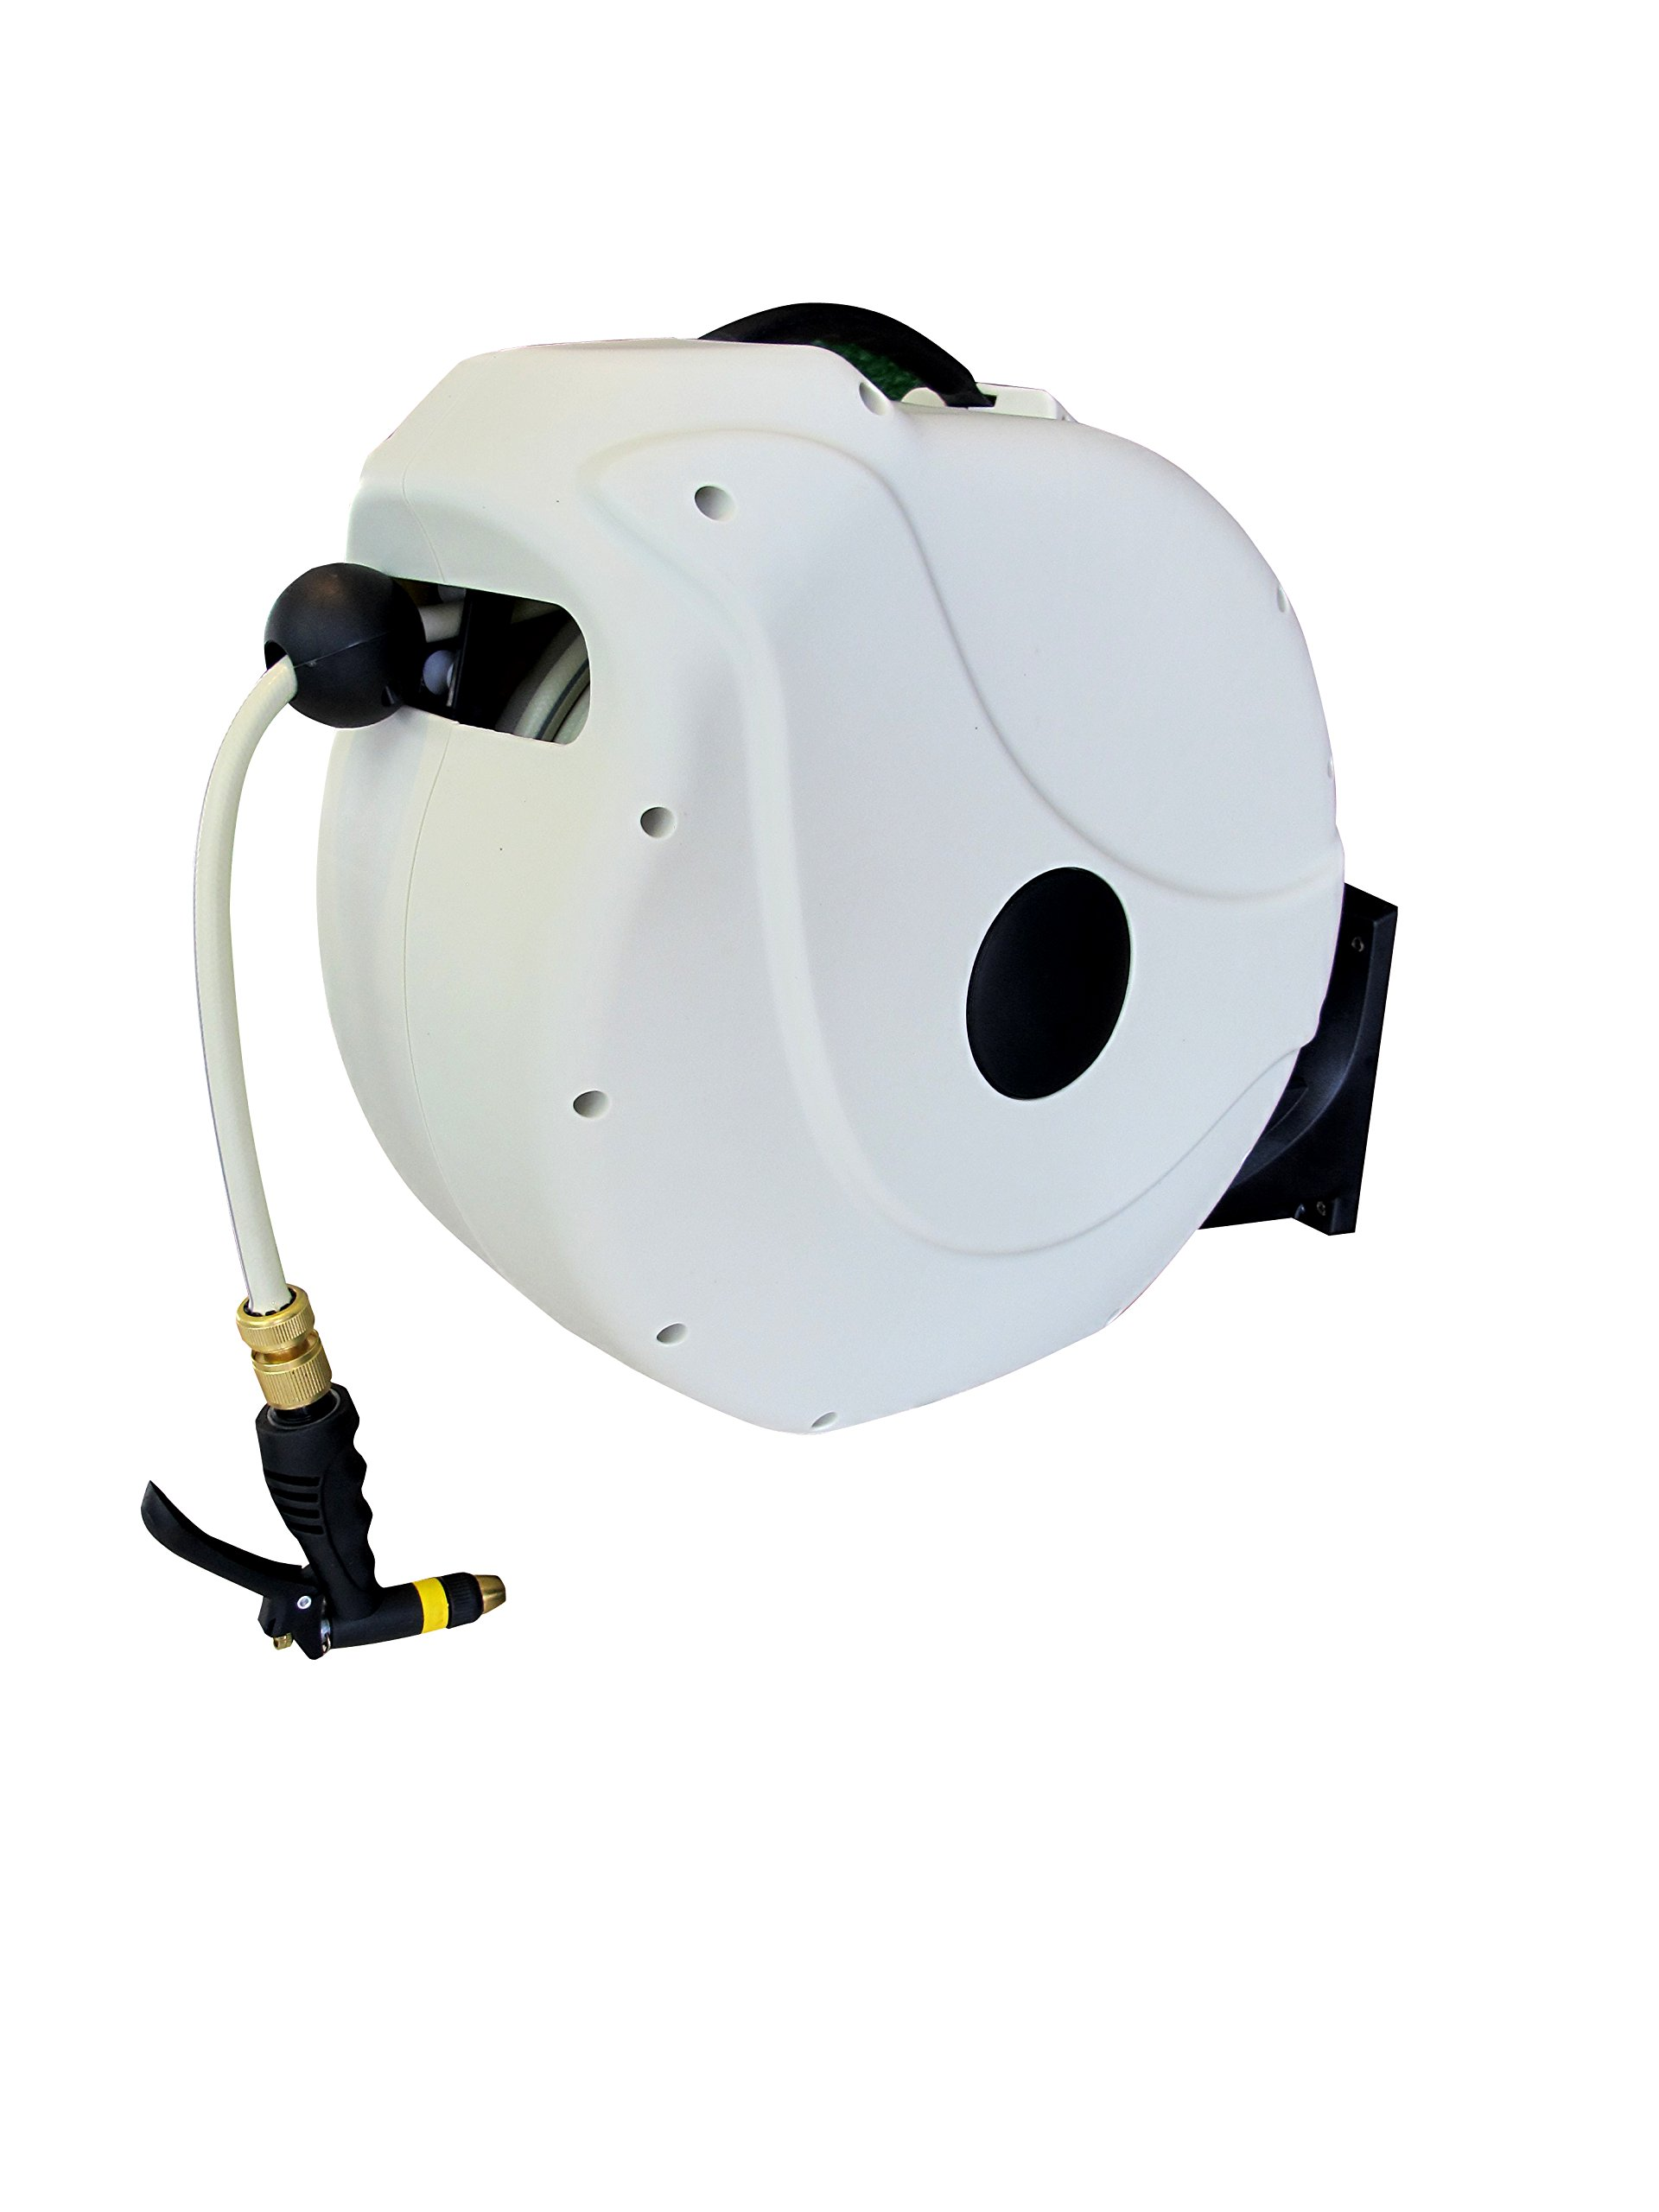 Sunneday Retractable Water Hose Reel, 82', White